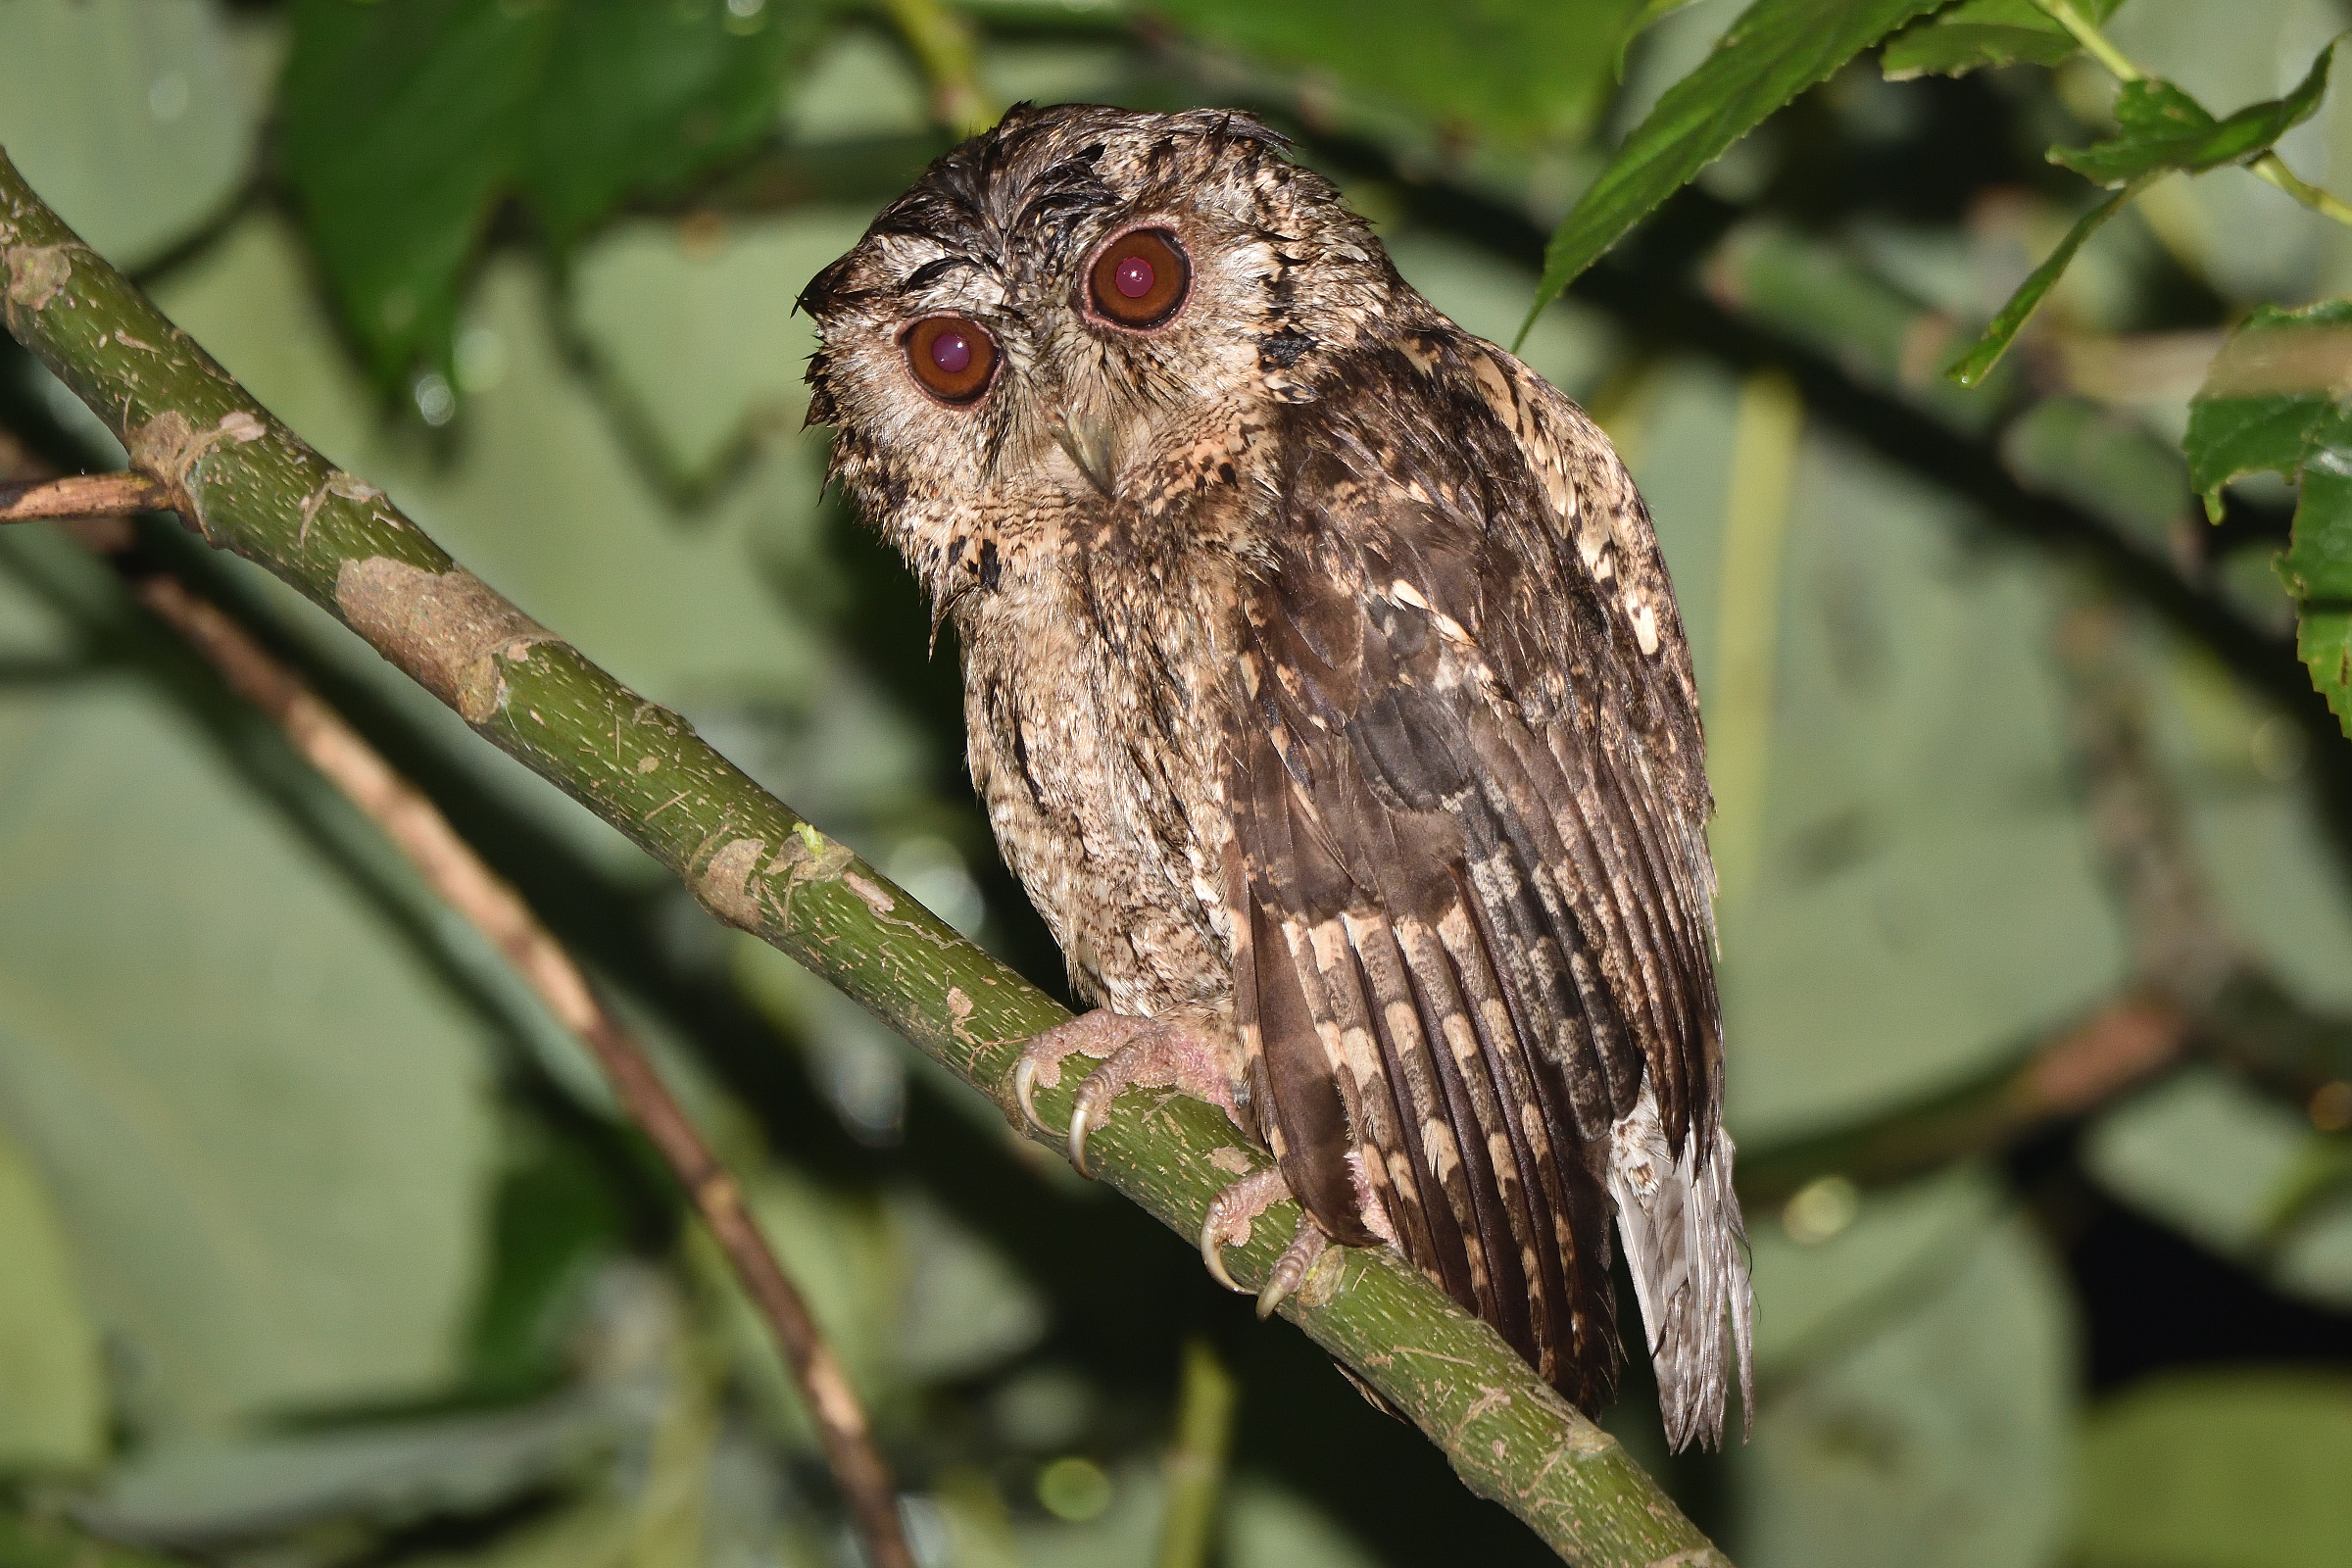 Collard_Scops_Owl_1519_2400